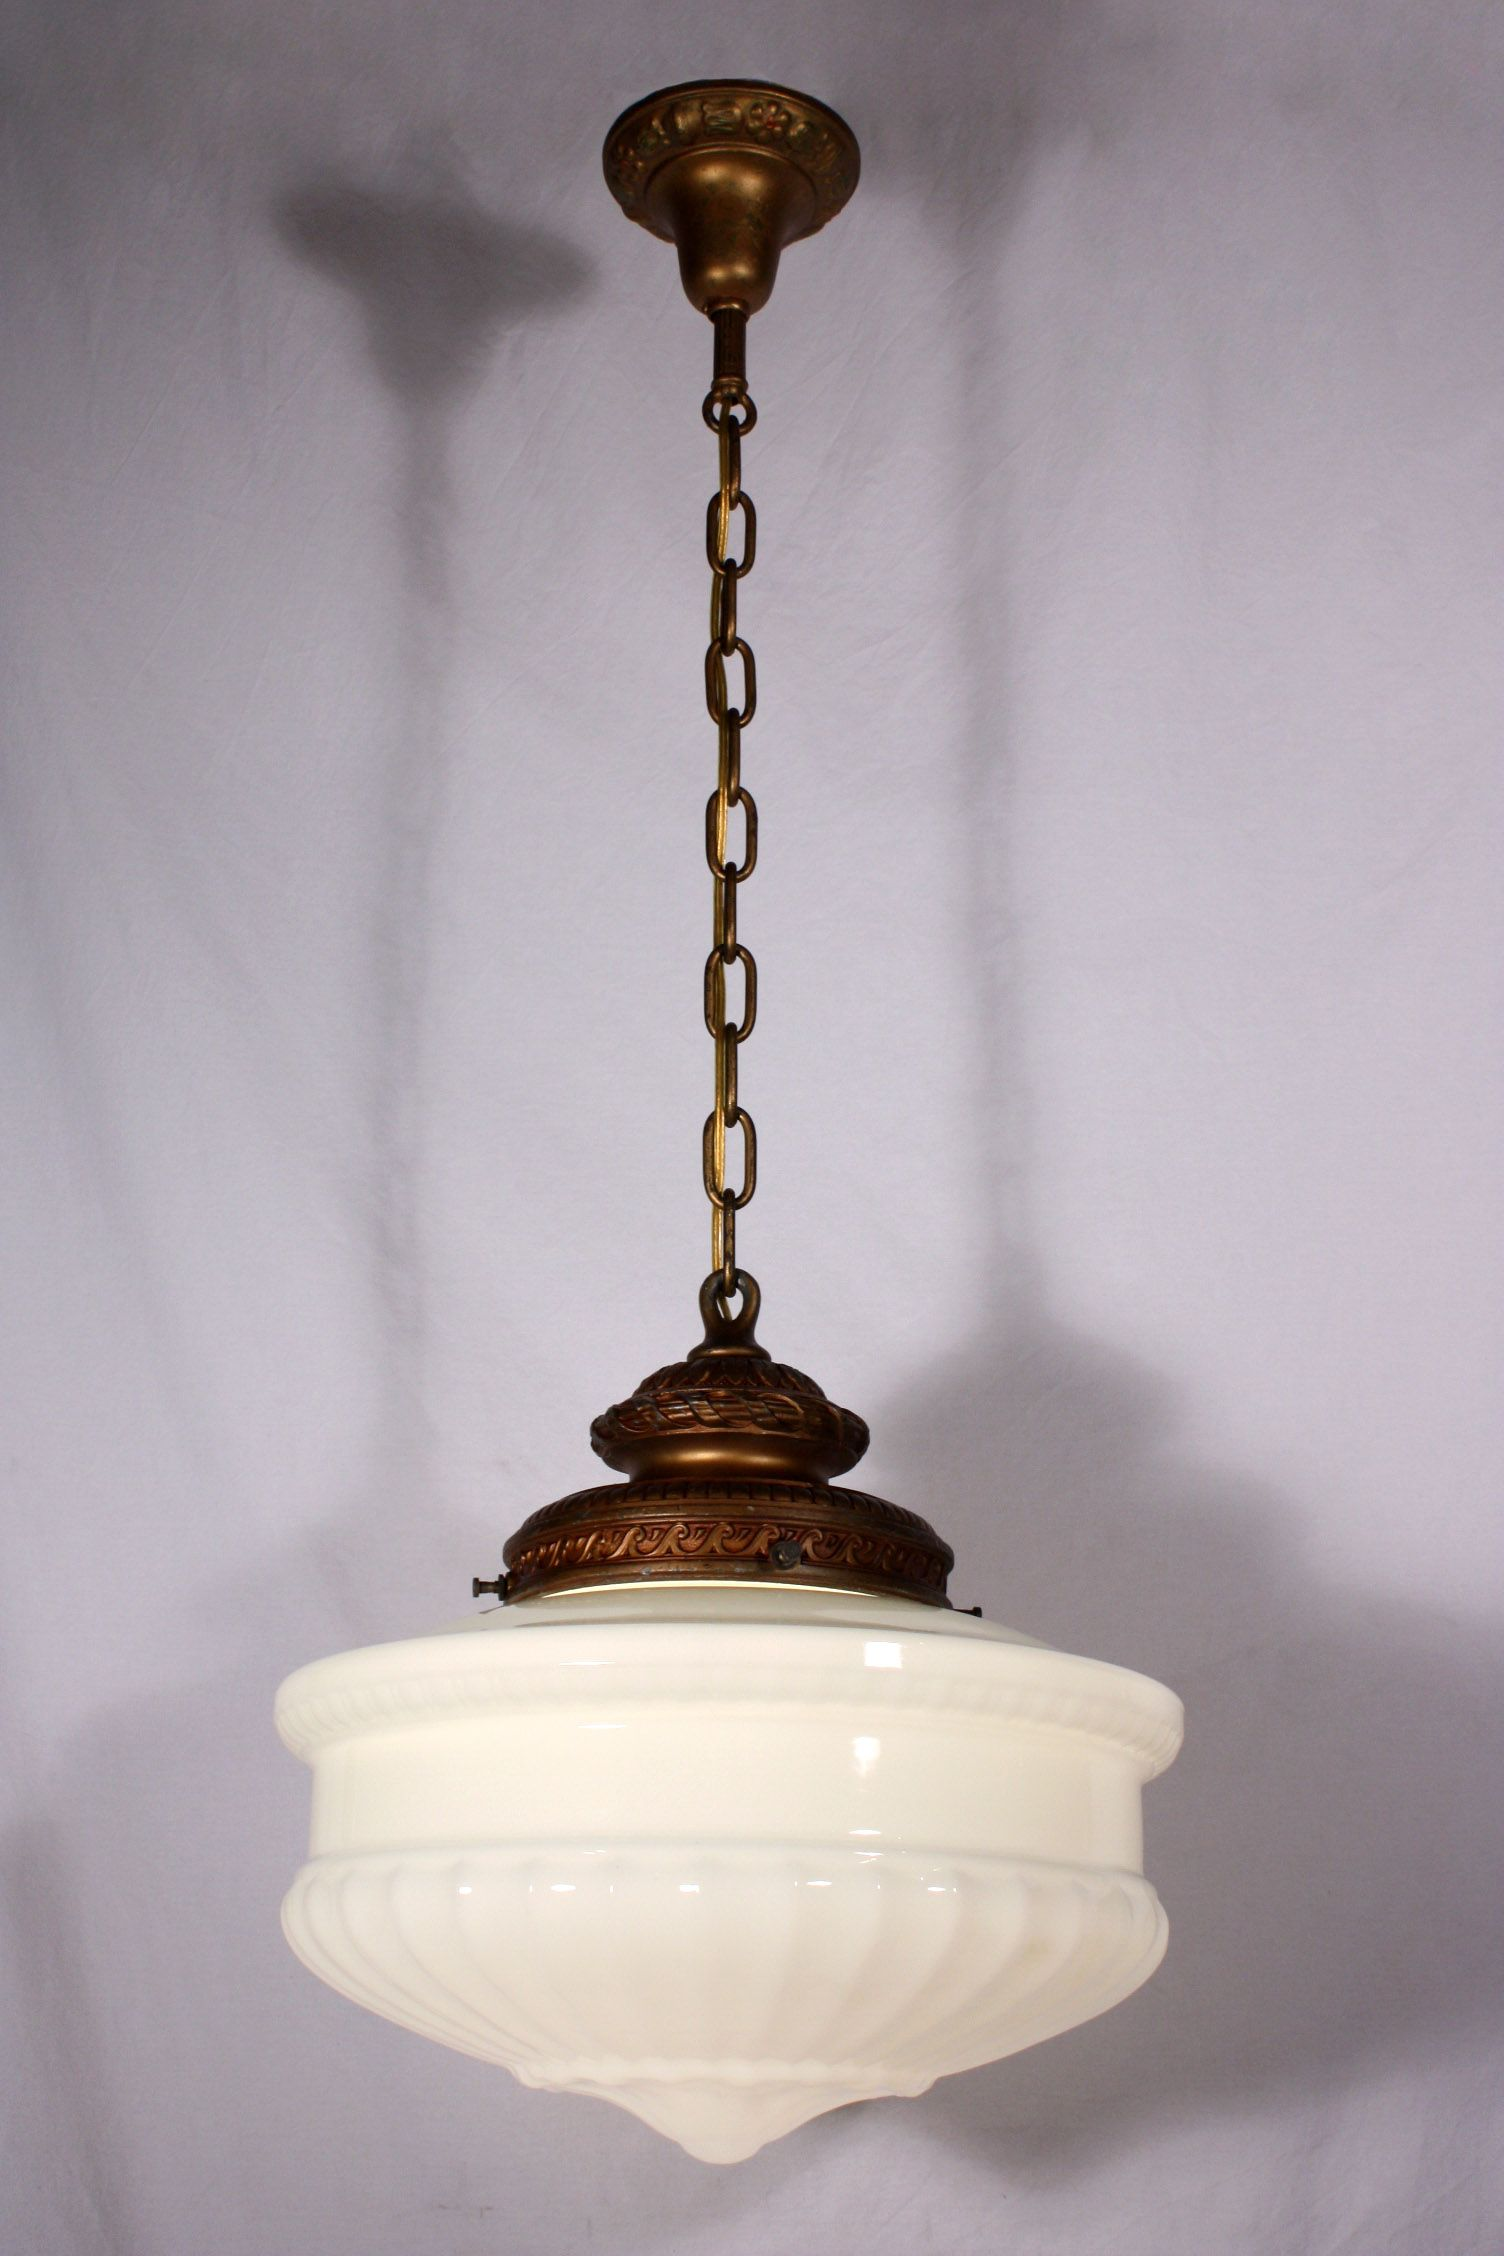 manufacture stock glass chandelier fresh fixture collection small of lamp antique inspirational light shades